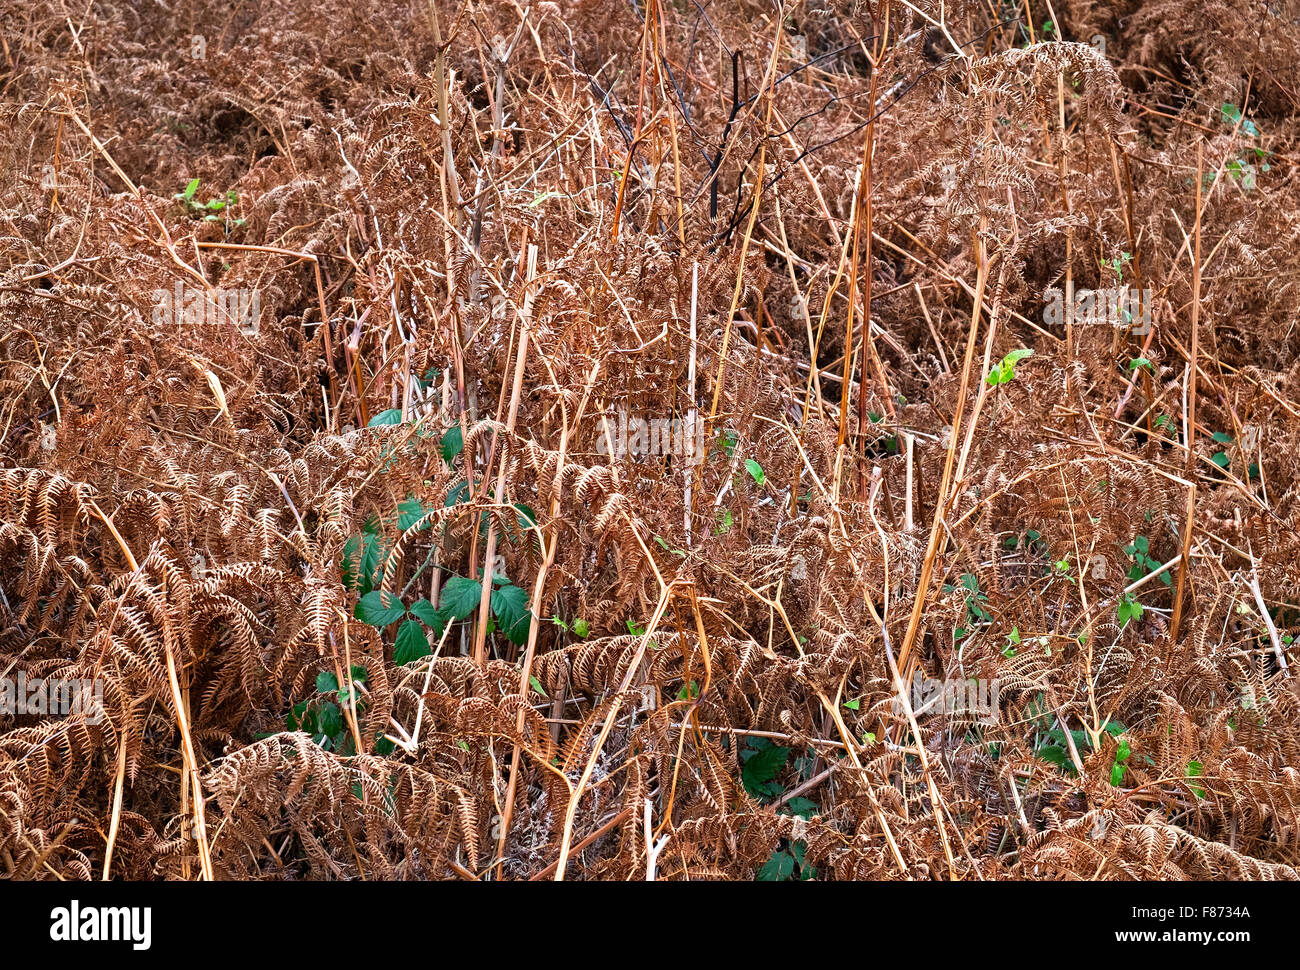 Bracken dried in its winter stage - Stock Image